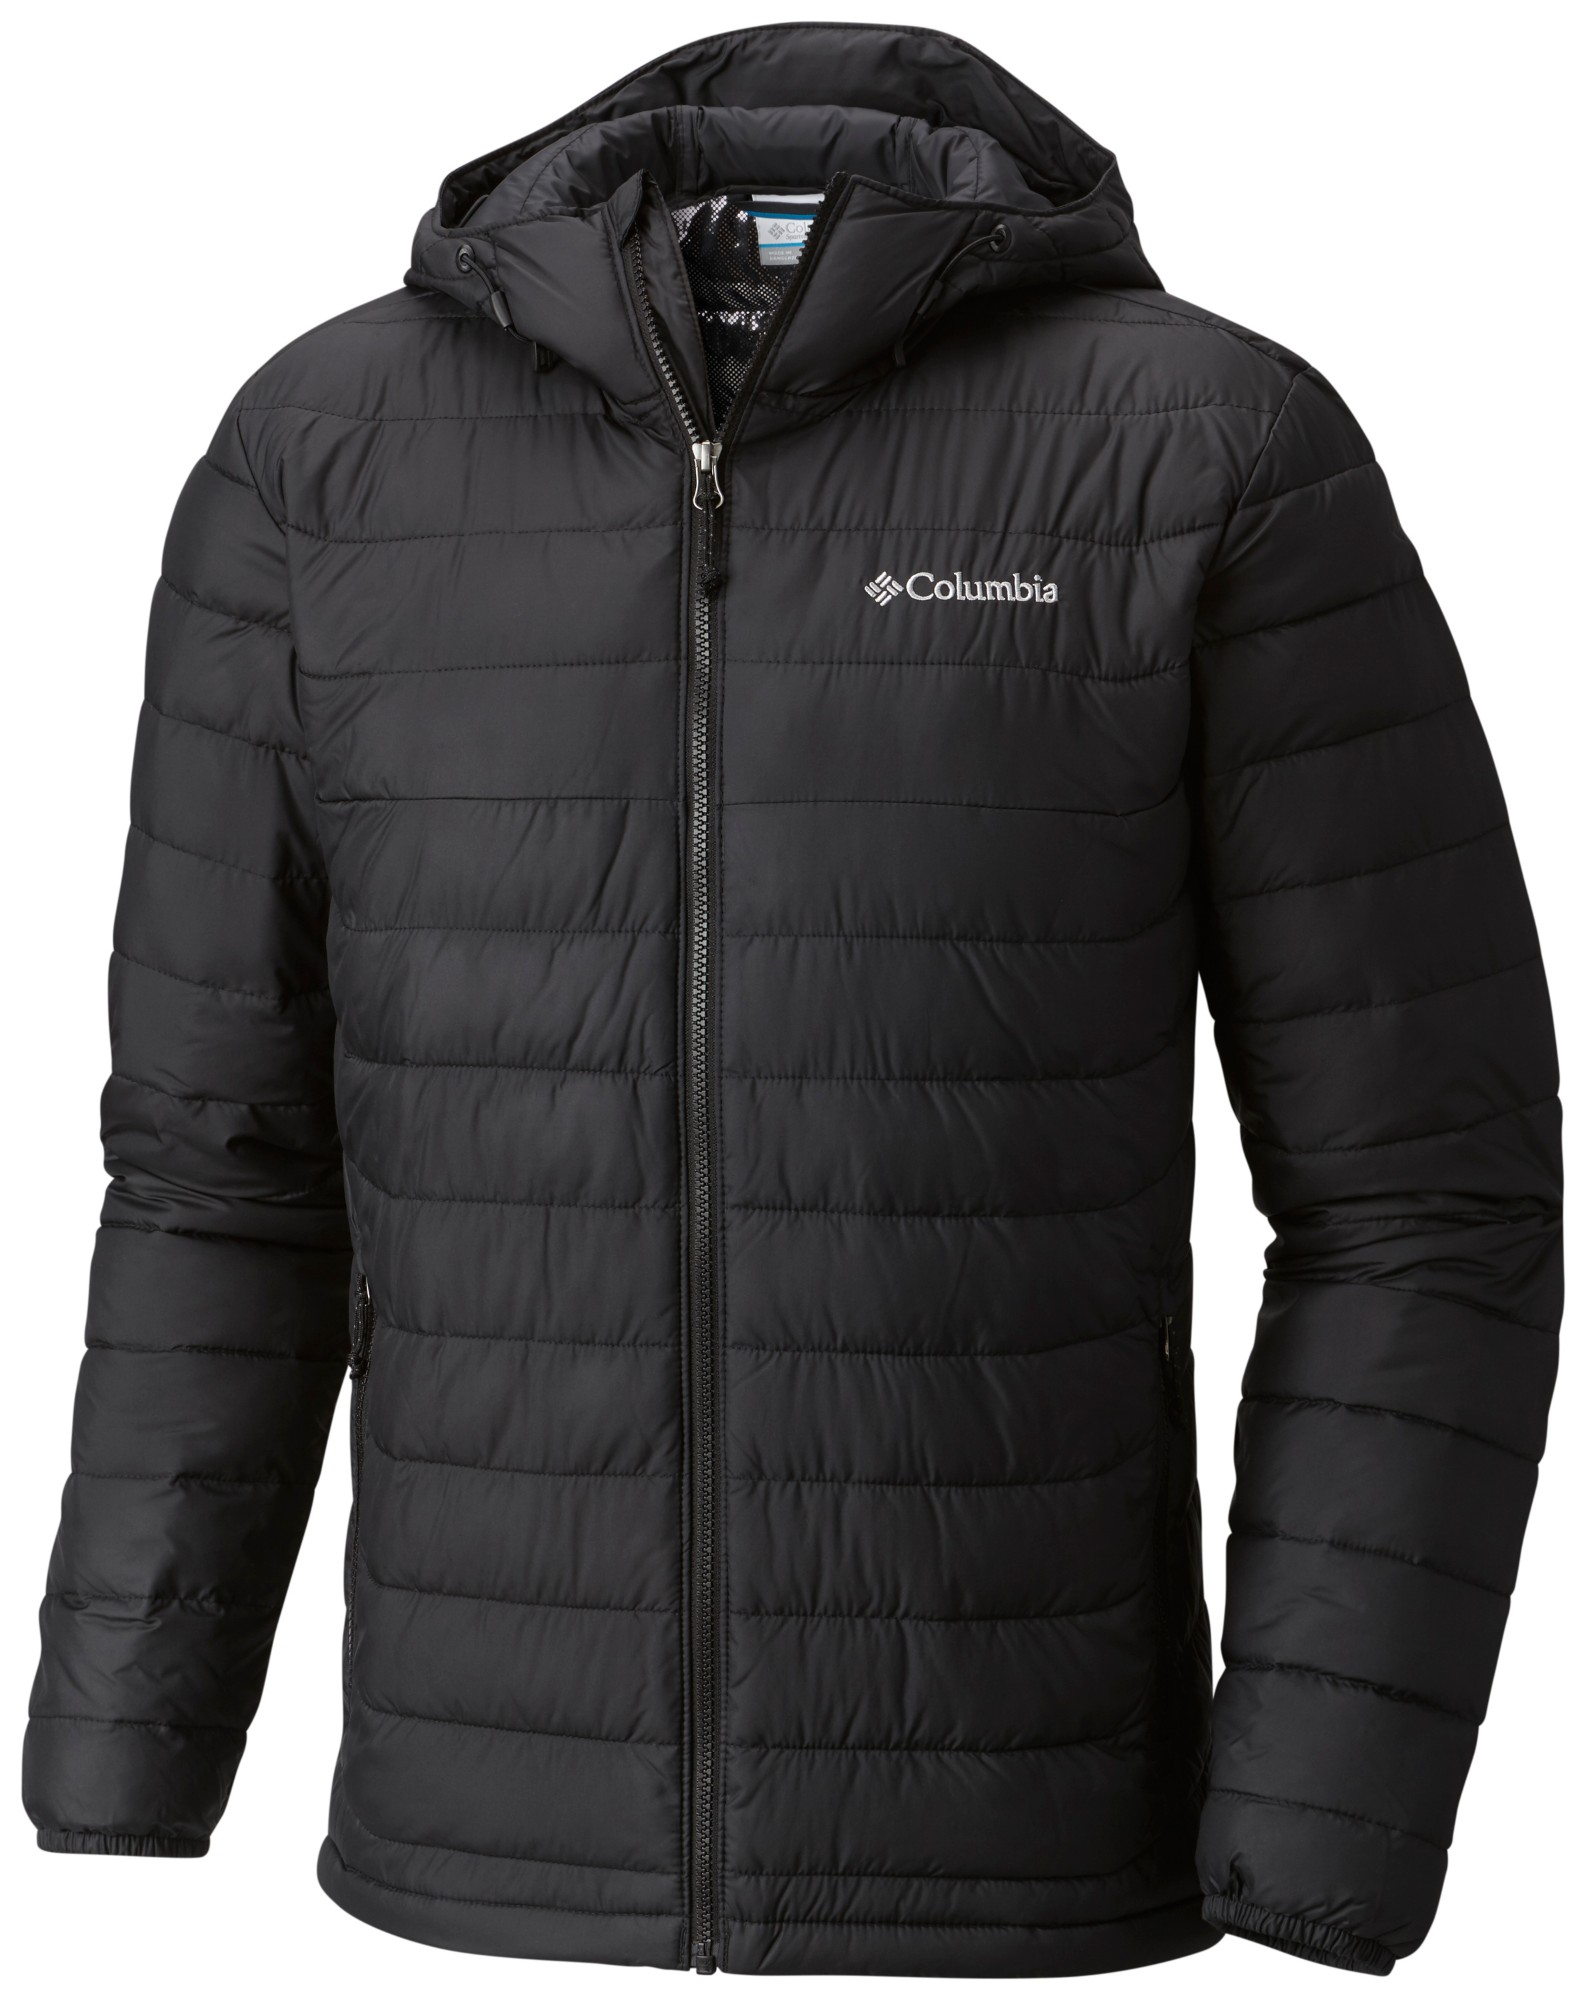 Columbia Powder Lite Hooded Jacket WO1151 Black L